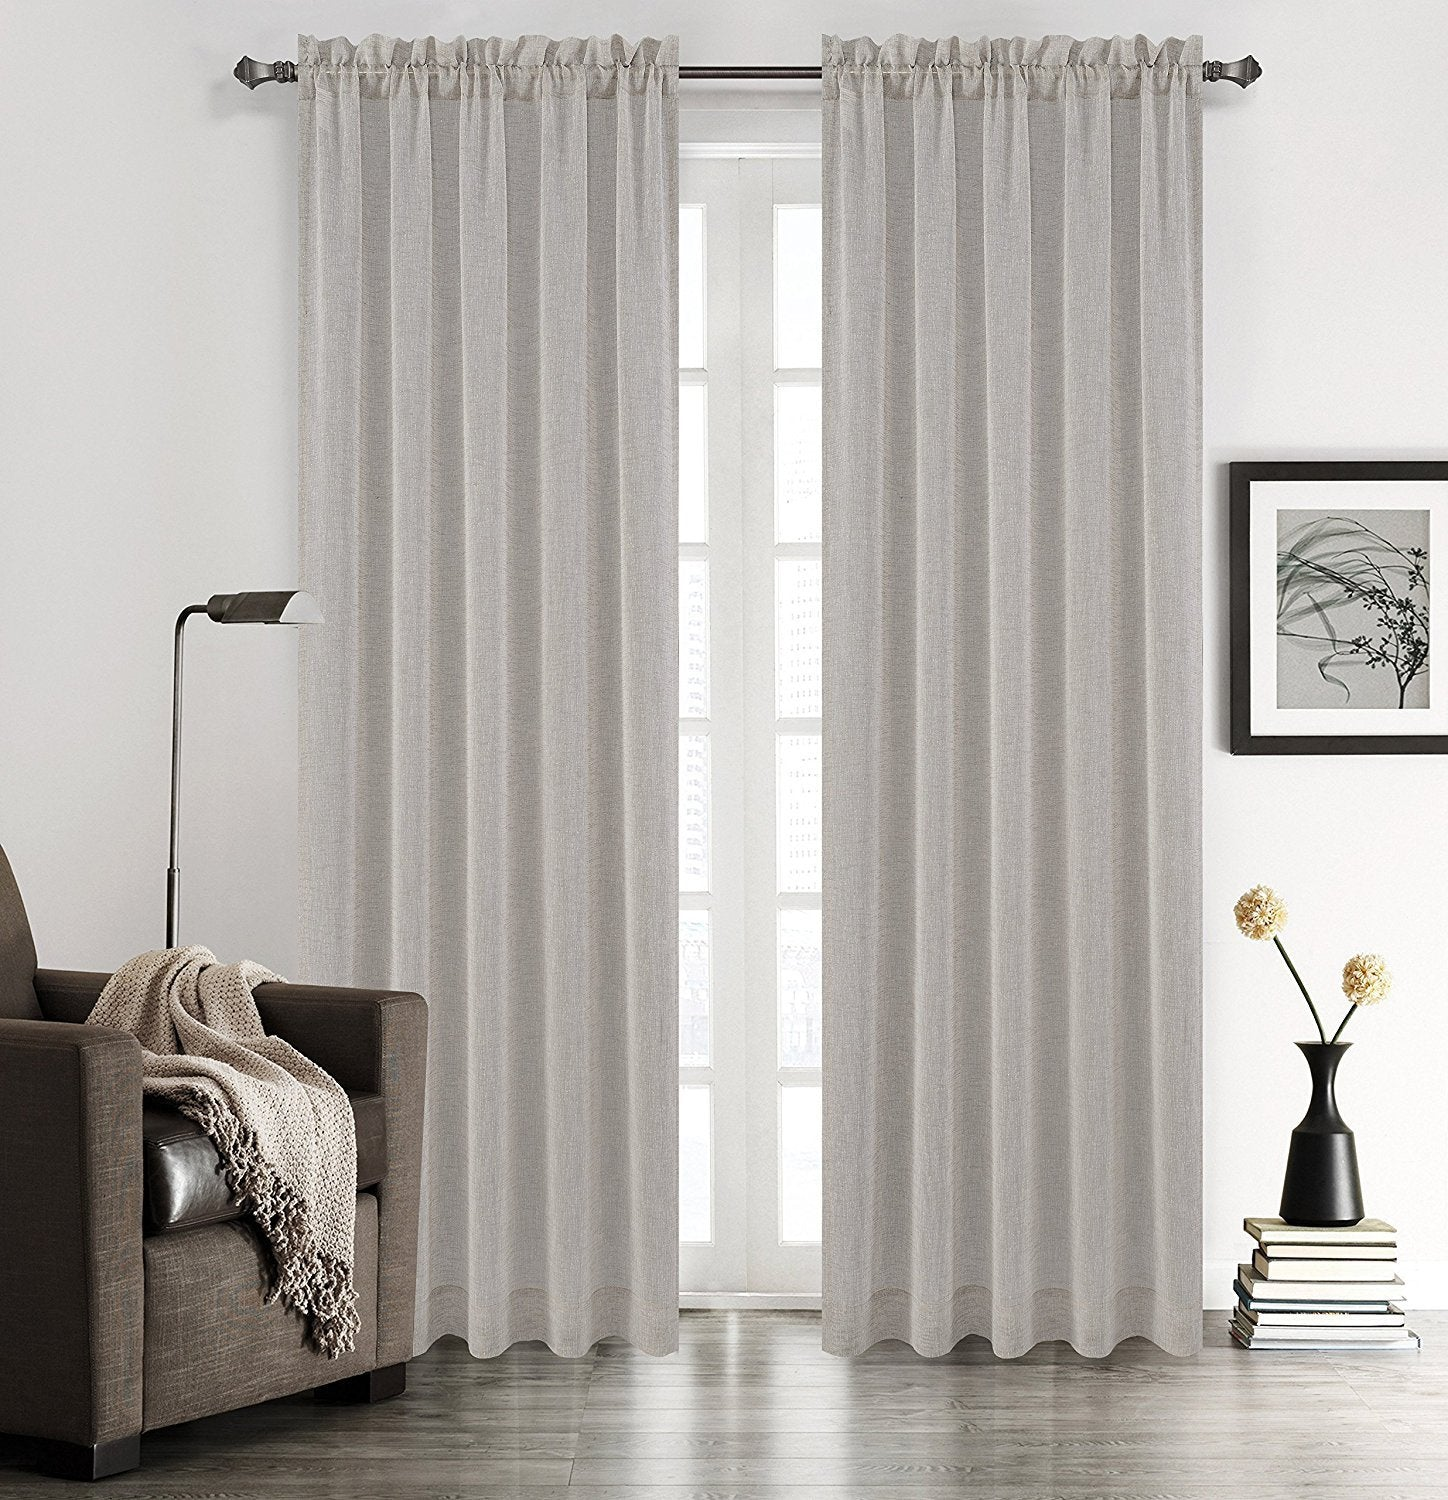 Chloe Set of 2 Faux Linen Sheer Drapery Curtain Panels - 5 Colors